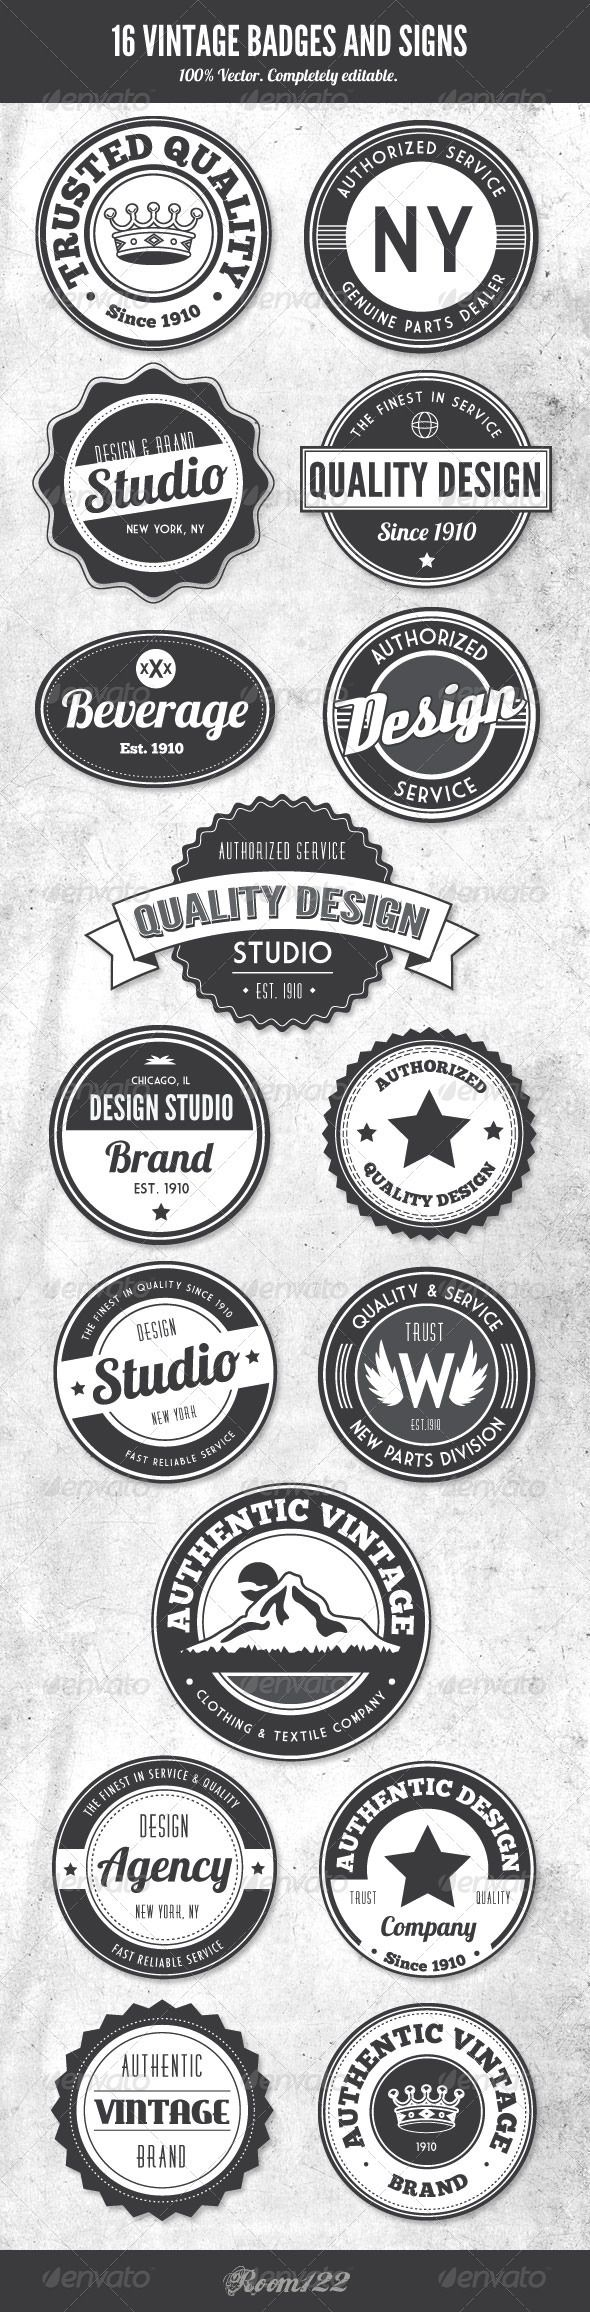 Vintage Style Badges and Logos-Great inspiration for lots of 'badges/buttons/logos'